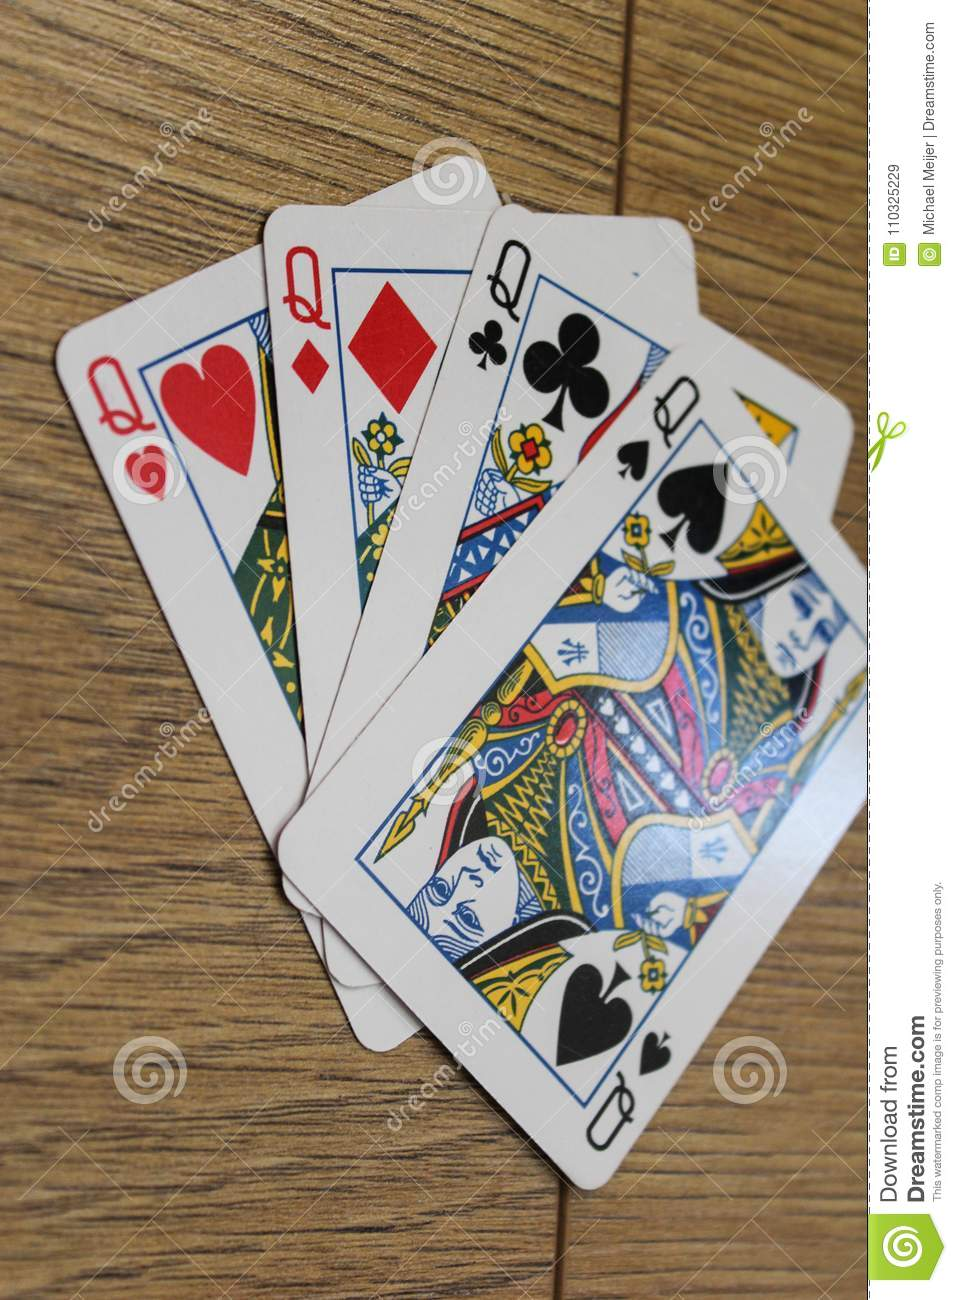 Poker cards on a wooden backround, set of queens of clubs, diamonds, spades, and hearts